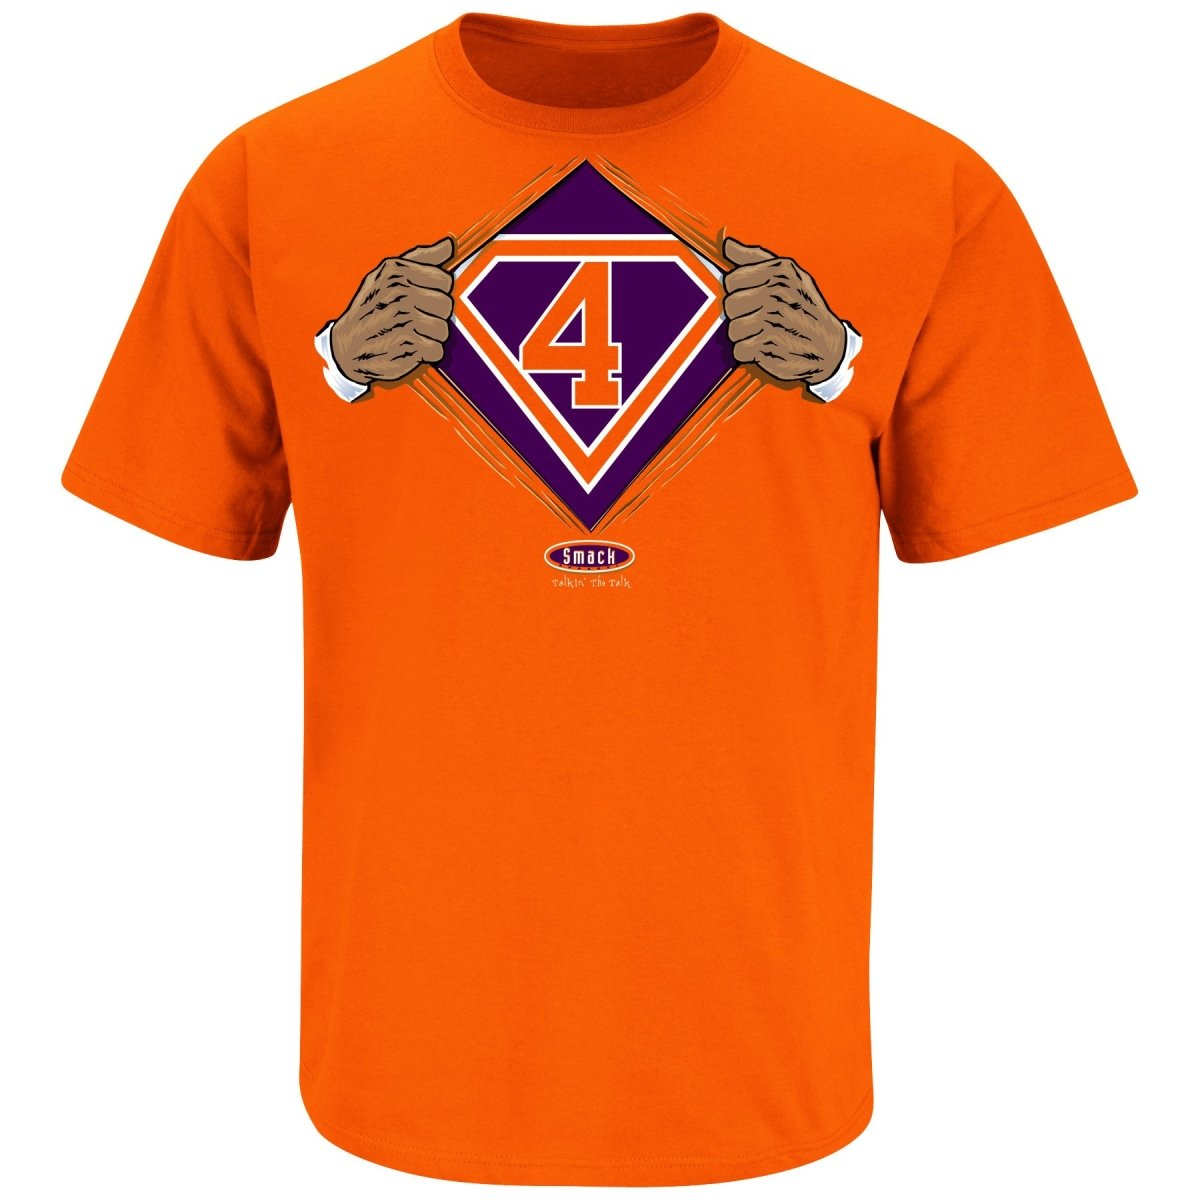 "Clemson Tigers ""Super 4"" T-shirt - Mr. Knickerbocker"